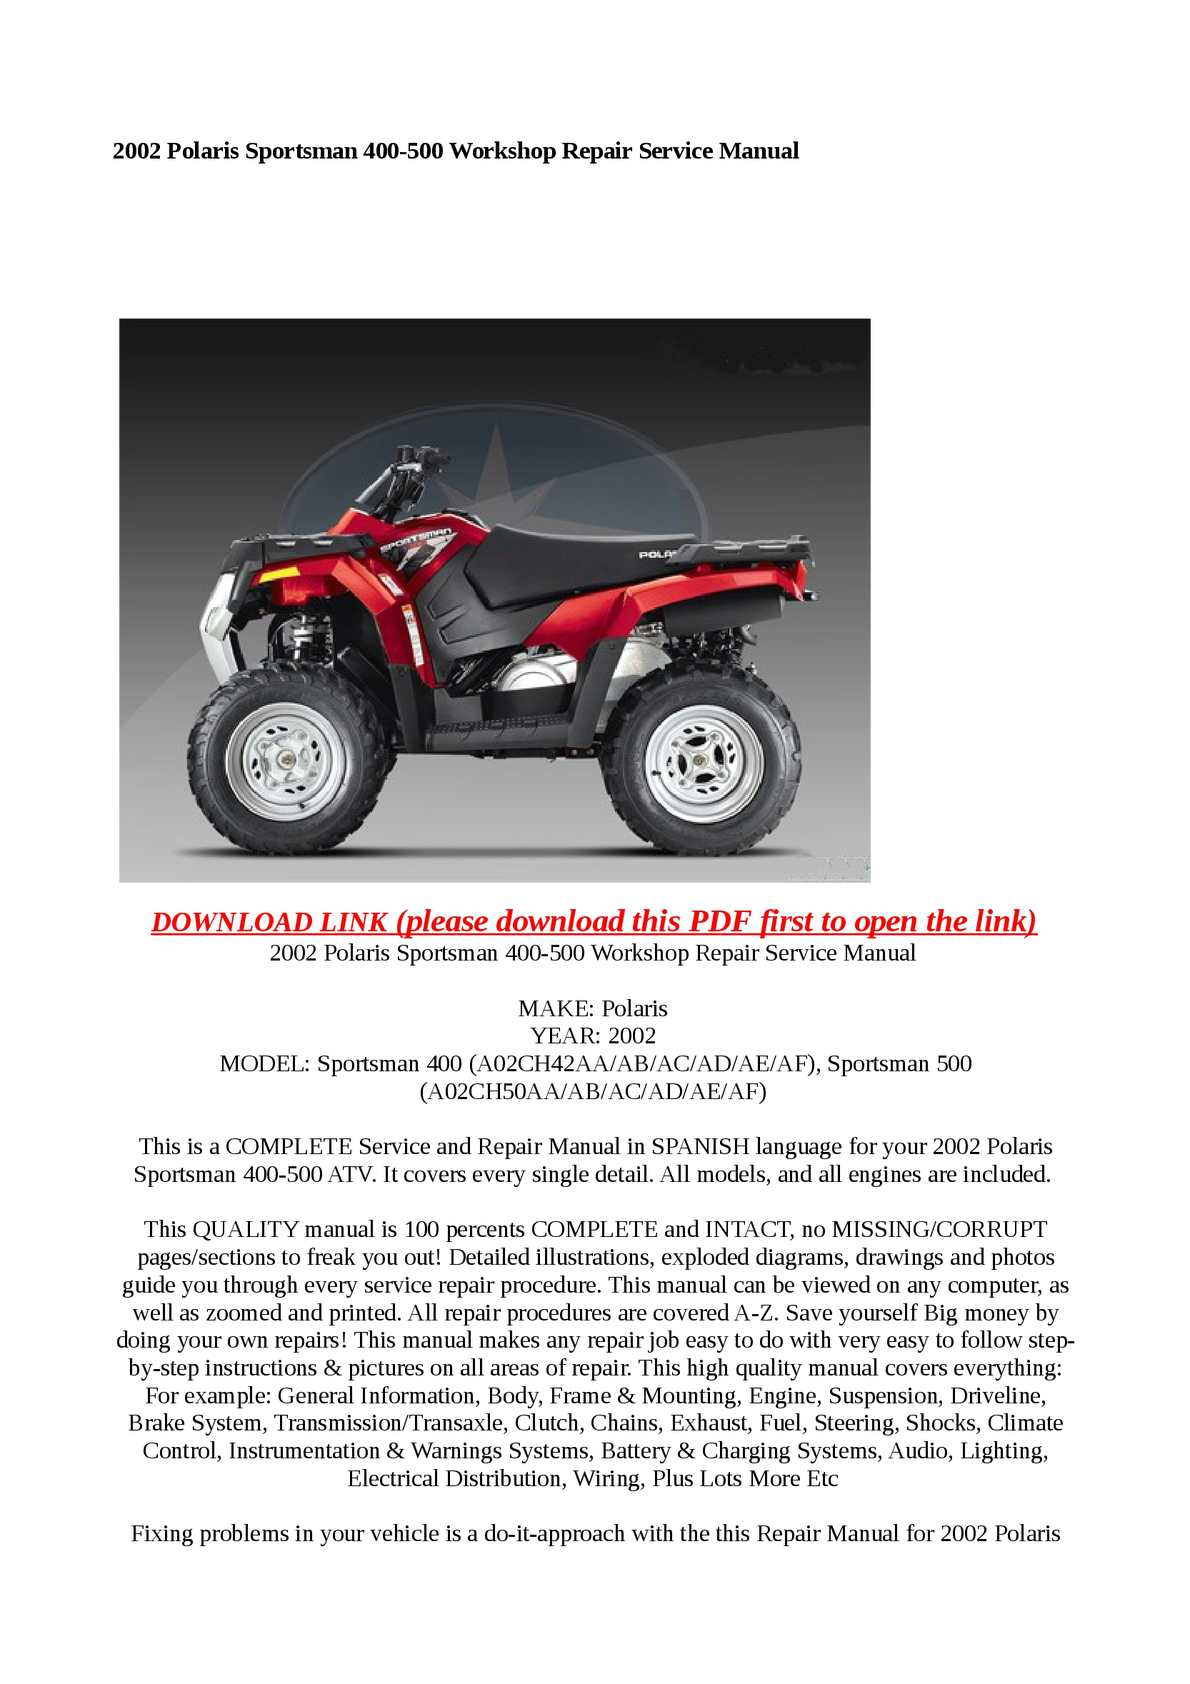 Calameo 2002 Polaris Sportsman 400 500 Workshop Repair Service Manual